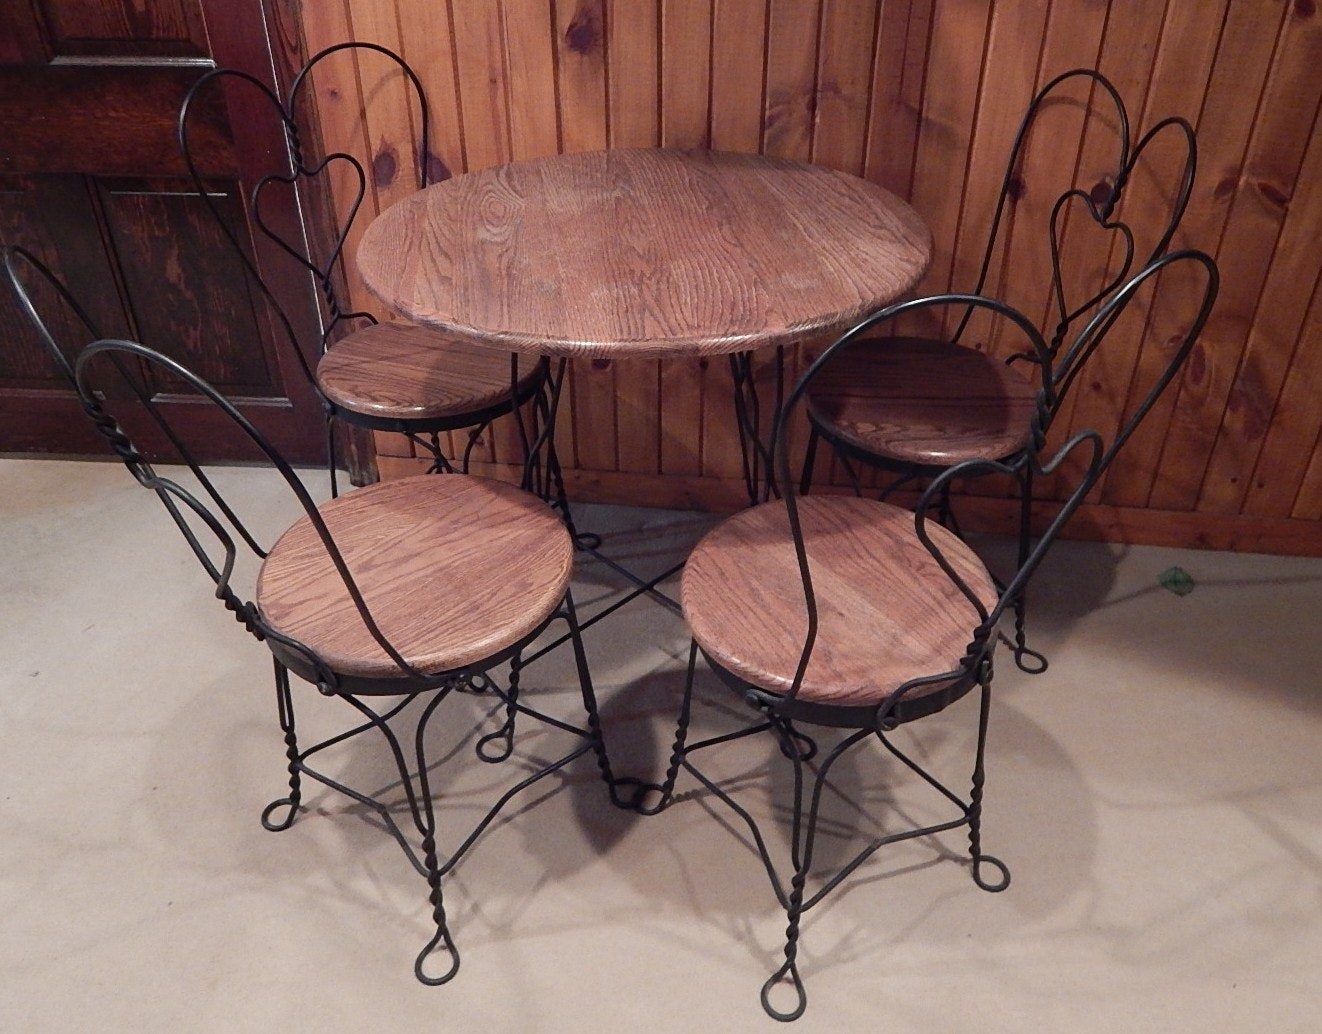 Round Parlor Style Wooden Table with Chairs